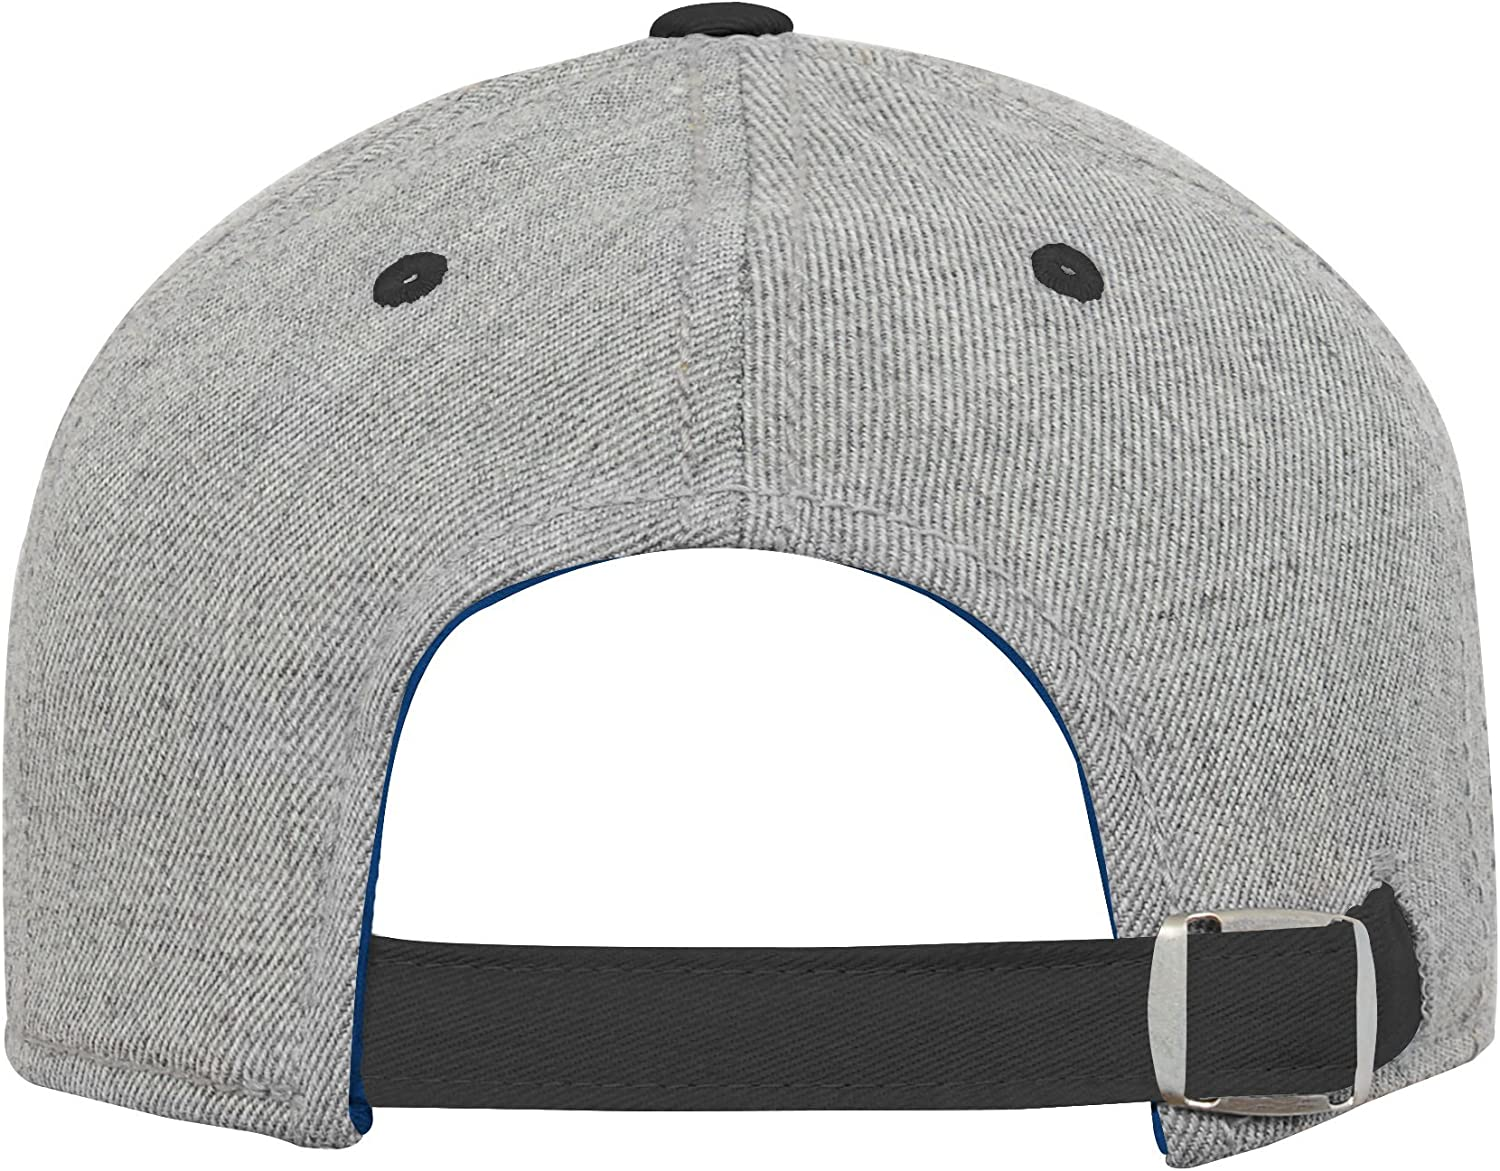 Outerstuff NFL Youth Boys Chainstitch Heather Twill Slouch Hat-Speed Blue-1 Size Indianapolis Colts